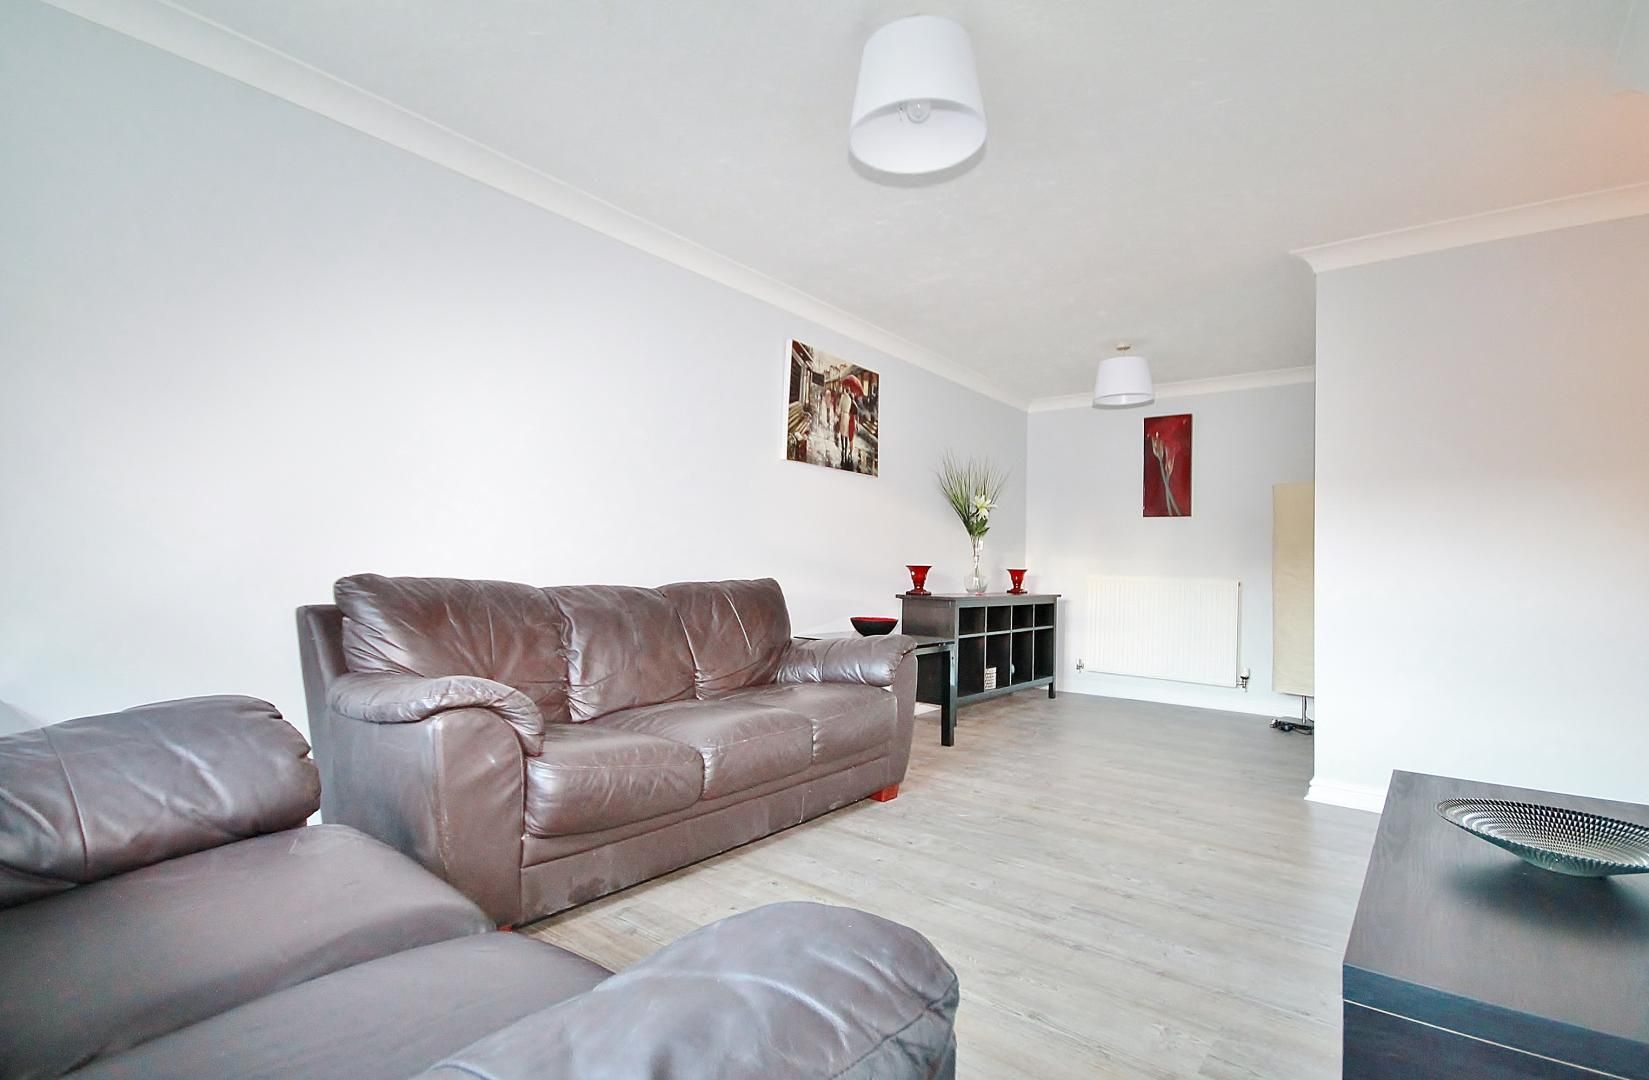 2 bed  to rent in Millennium Drive, E14